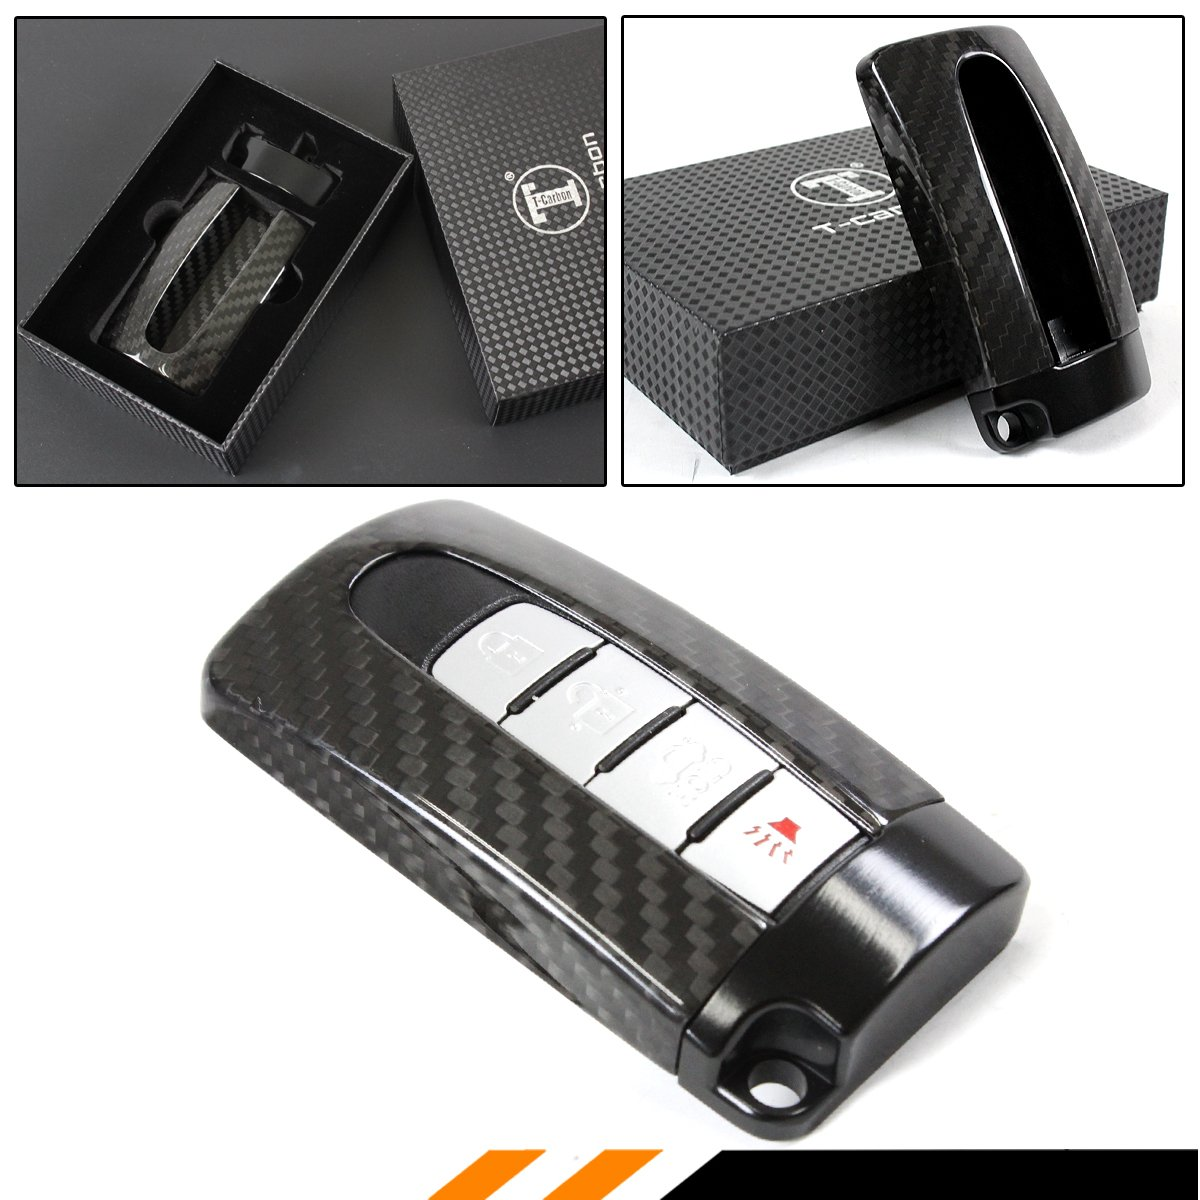 Carbon Fiber GTR Style CASE Cover with Black Base for Nissan KEYLESS Entry Key FOB